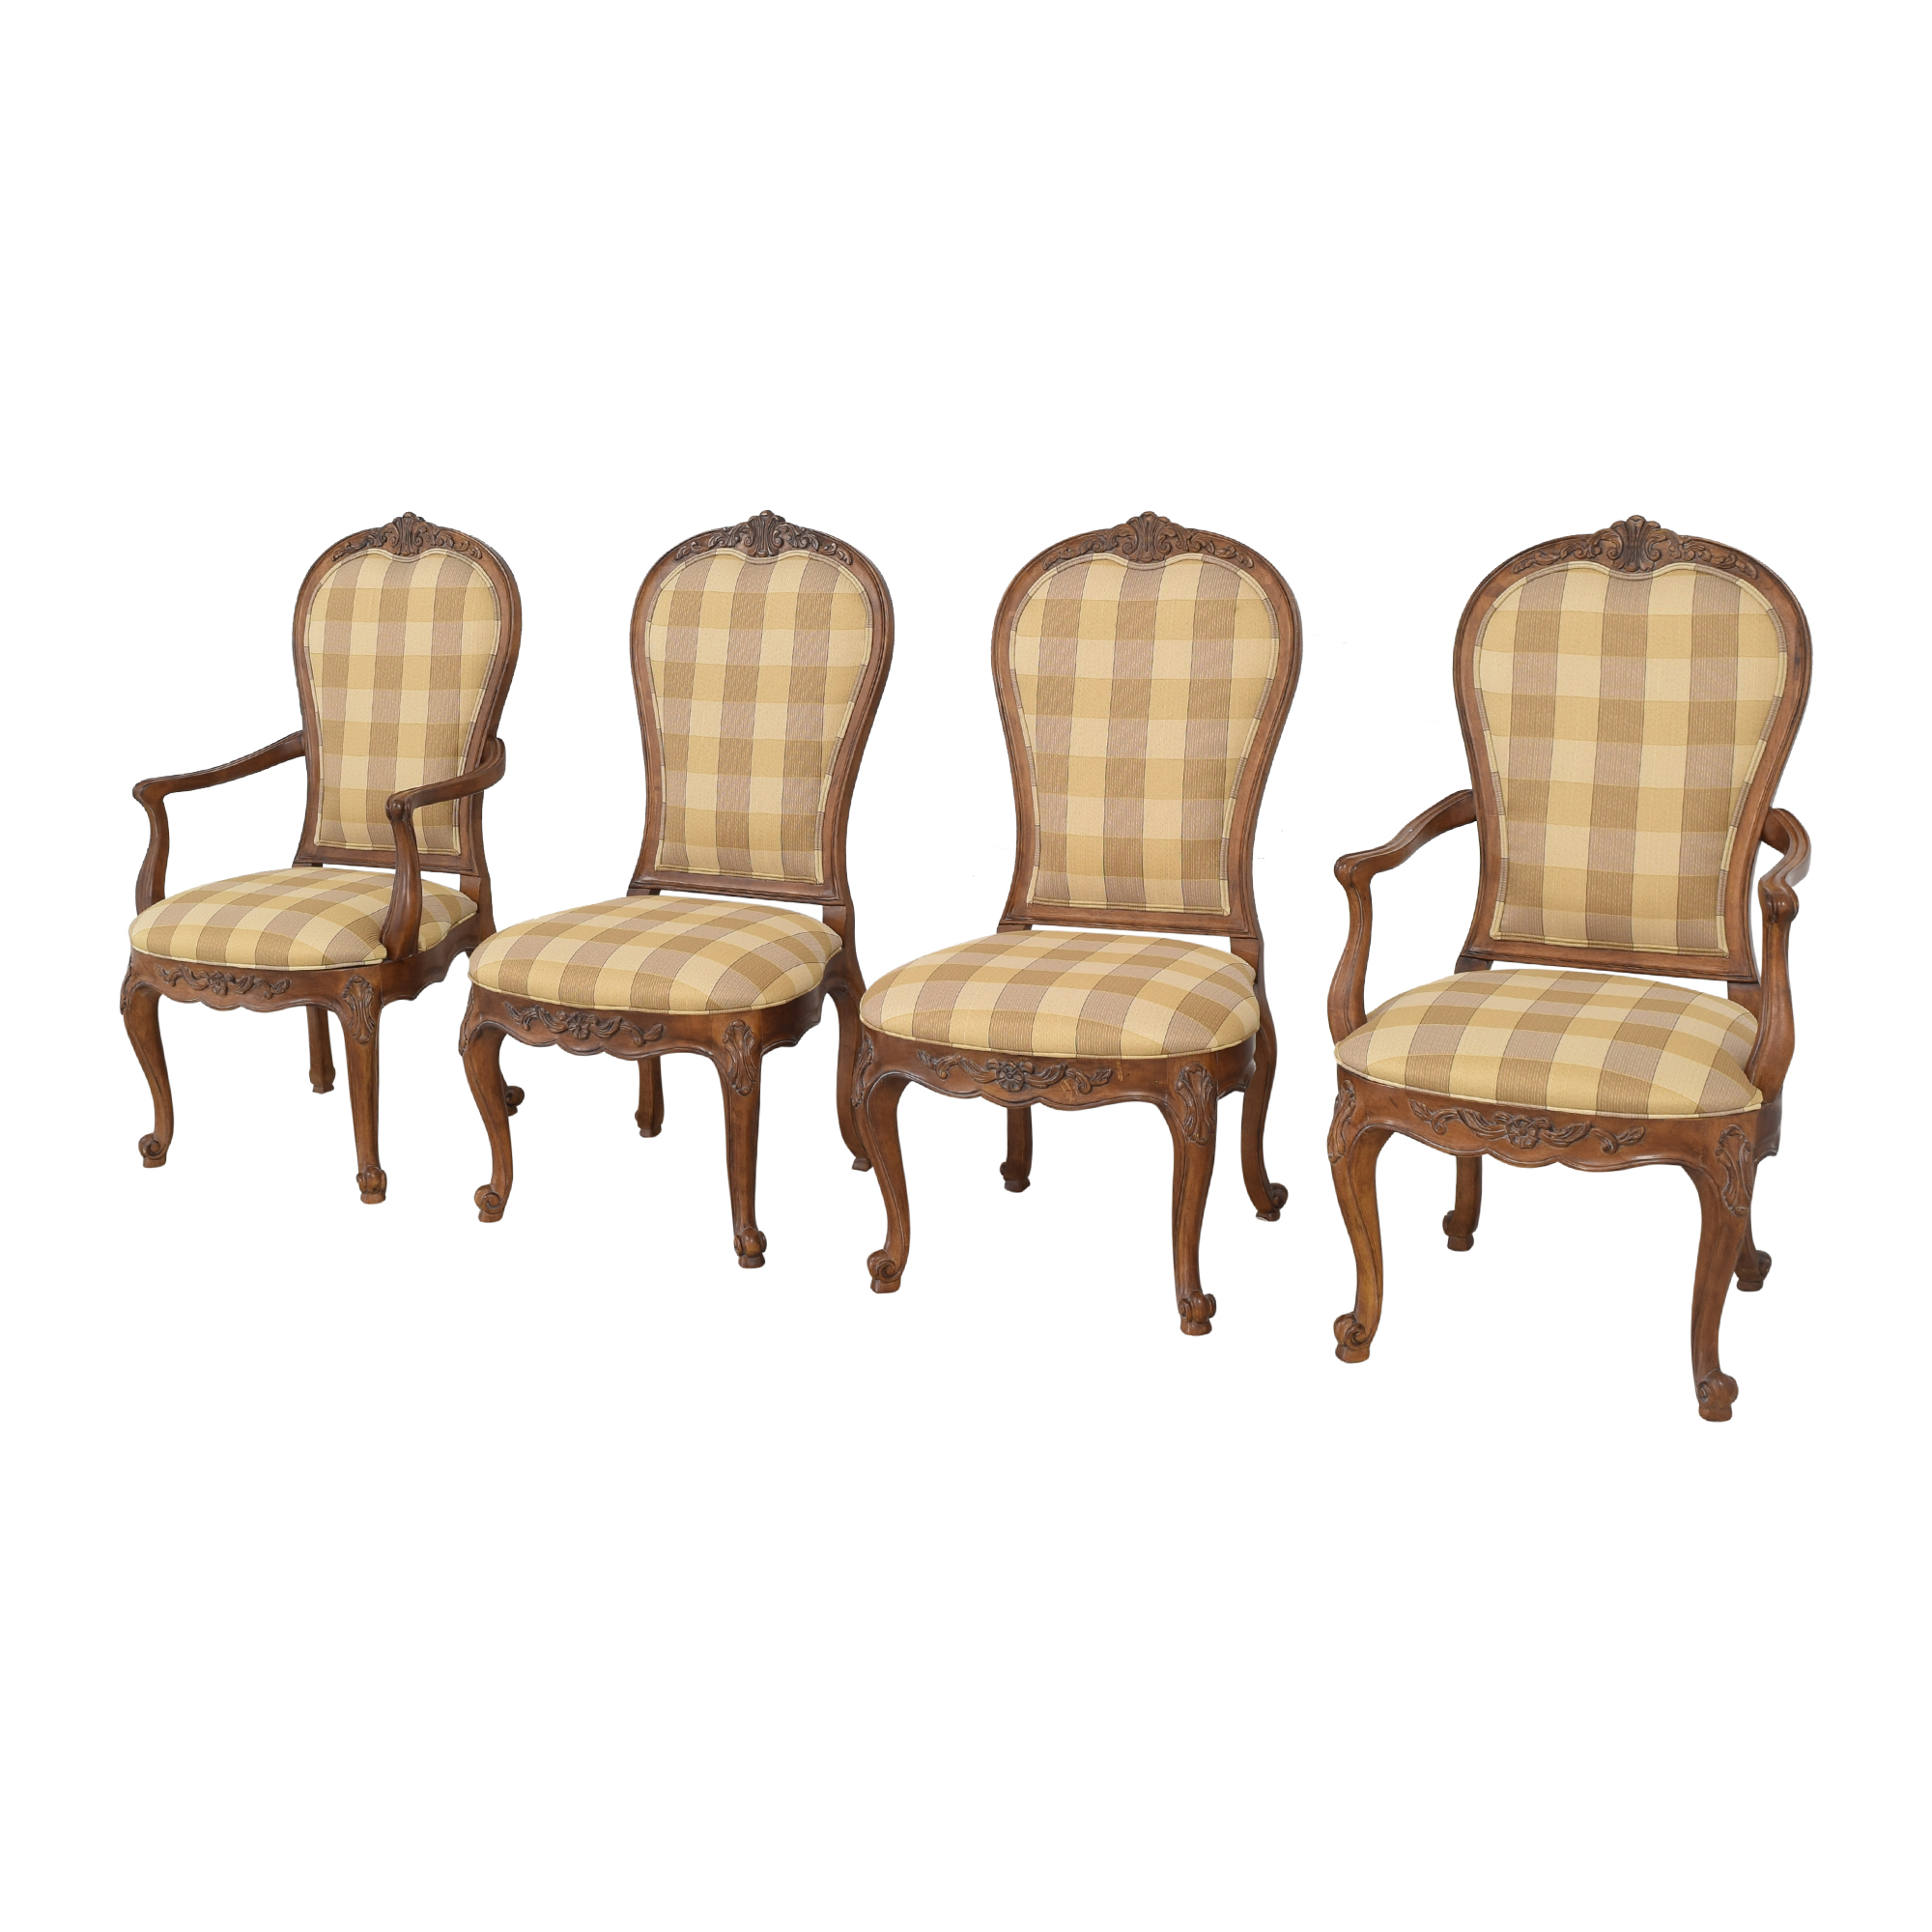 Century Furniture Century Furniture Dining Chairs pa